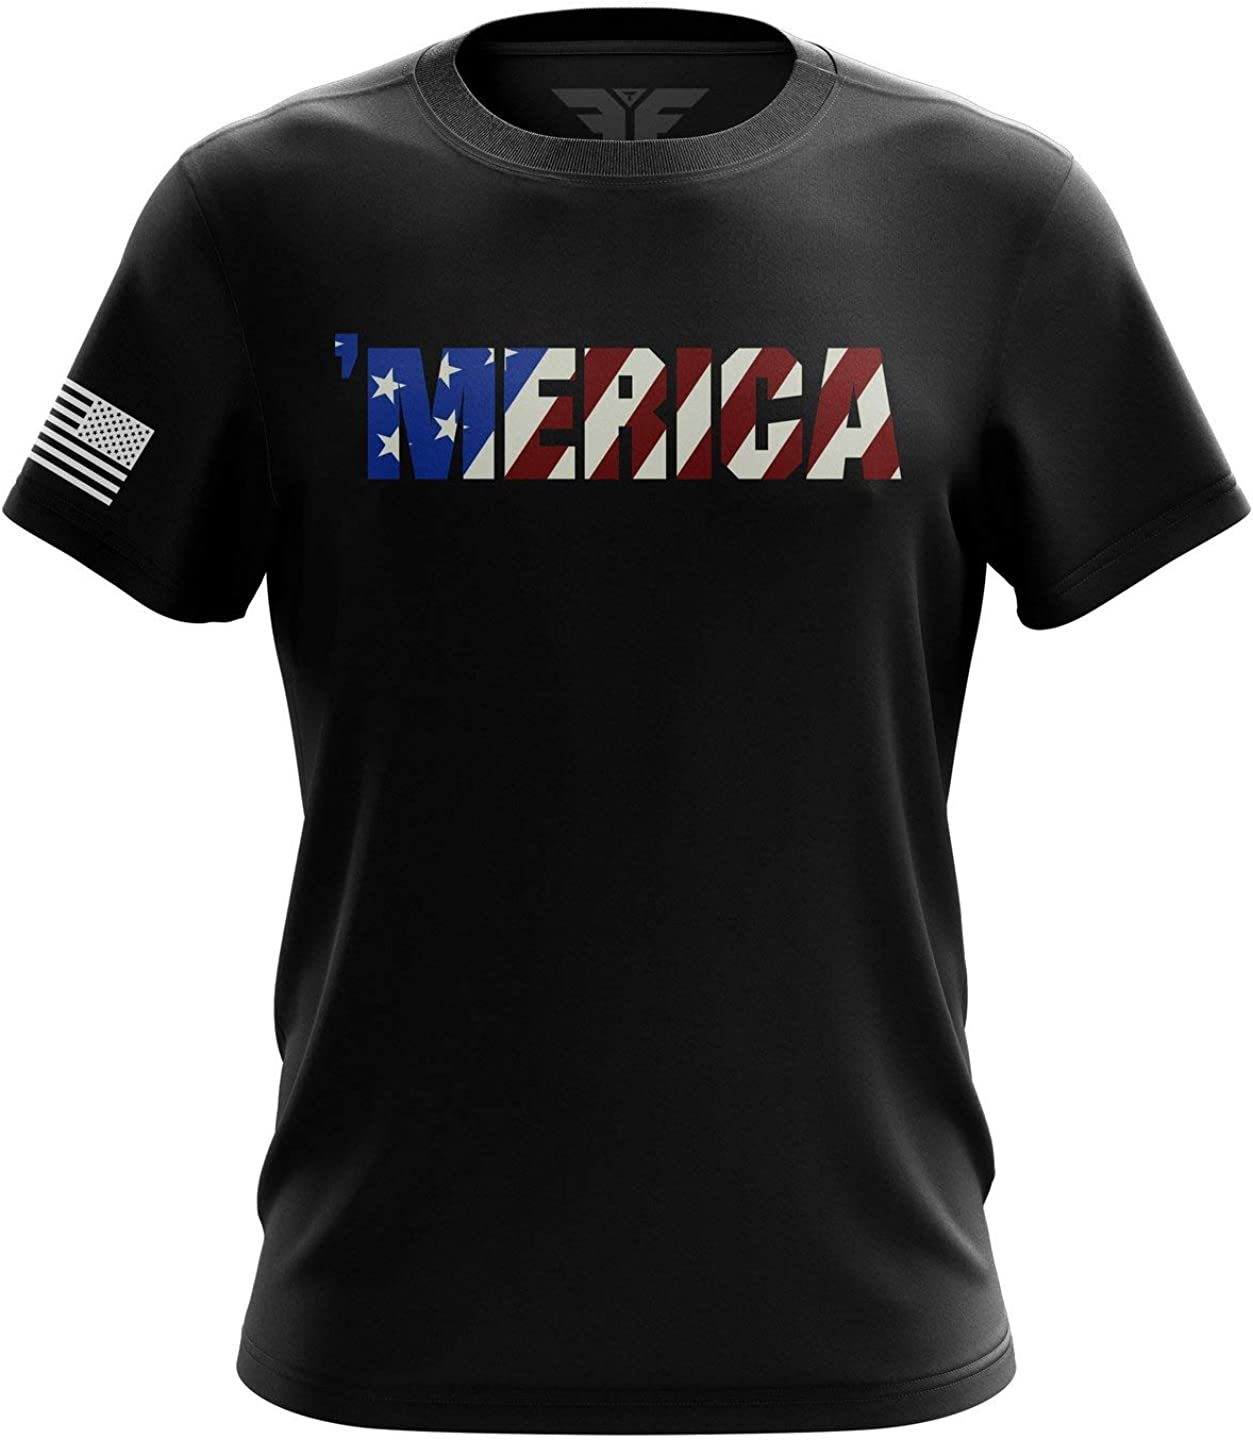 U.S Flag Patriotic Military Army 2021 new Mens T-Shirt Now on sale Printed Packaged